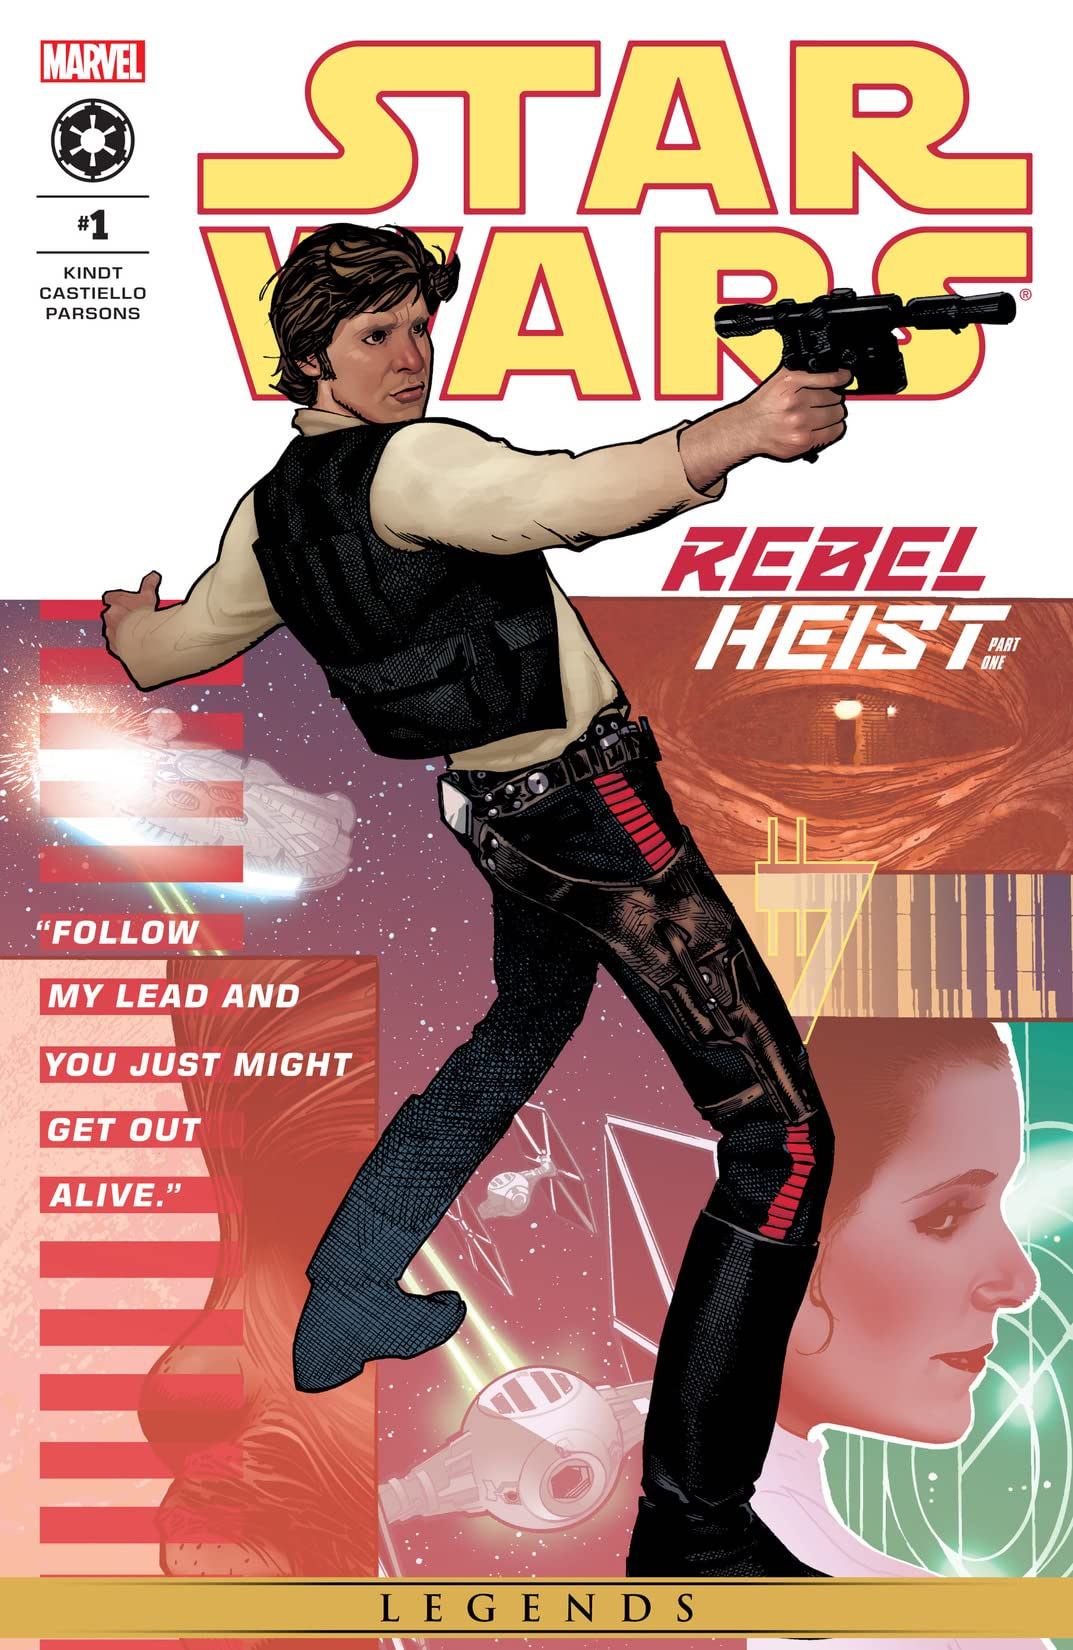 Star Wars: Rebel Heist (2014) #1 (of 4)